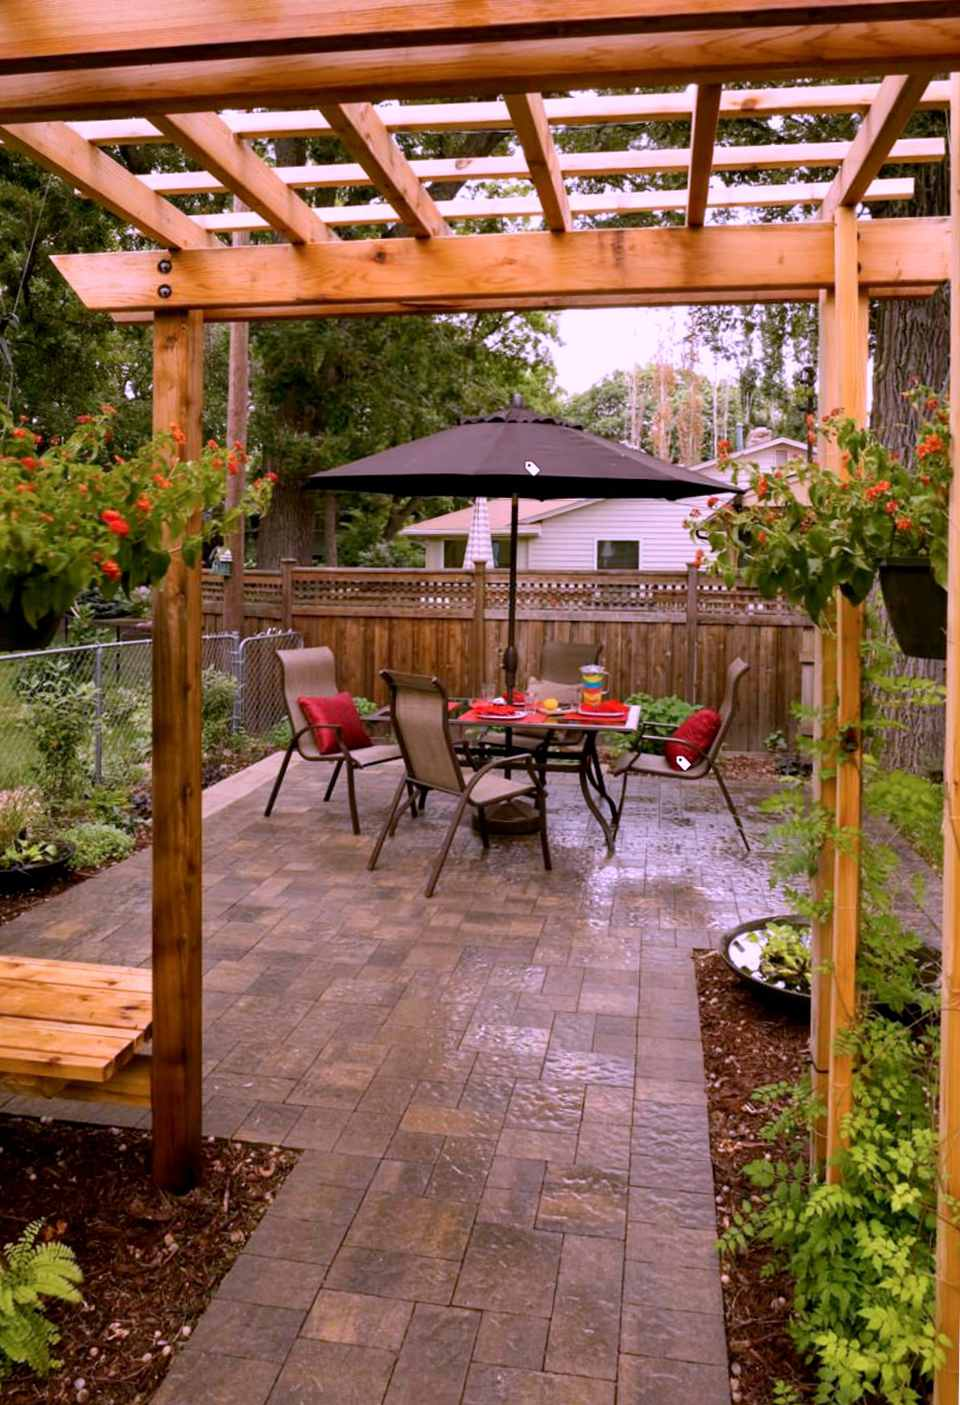 25 Perfect Patio Paver Design Ideas on Small Backyard Brick Patio Ideas id=26119